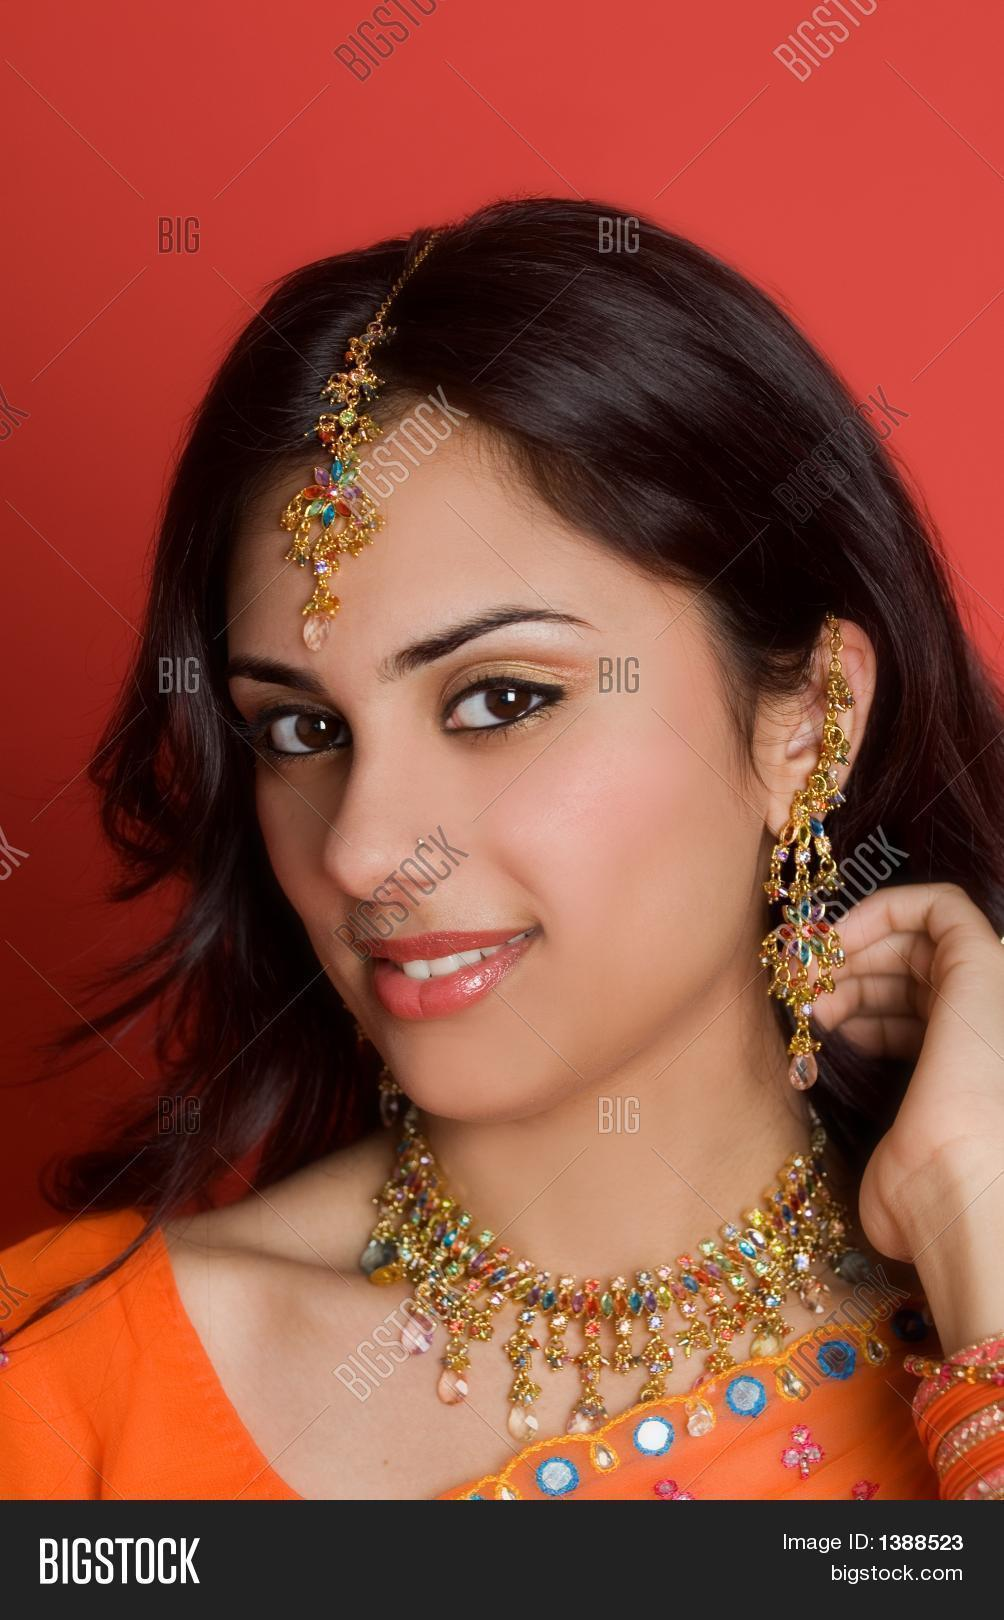 hindu single women in eastlake Free to join & browse - 1000's of indian women in australia - interracial dating, relationships & marriage with ladies & females online.